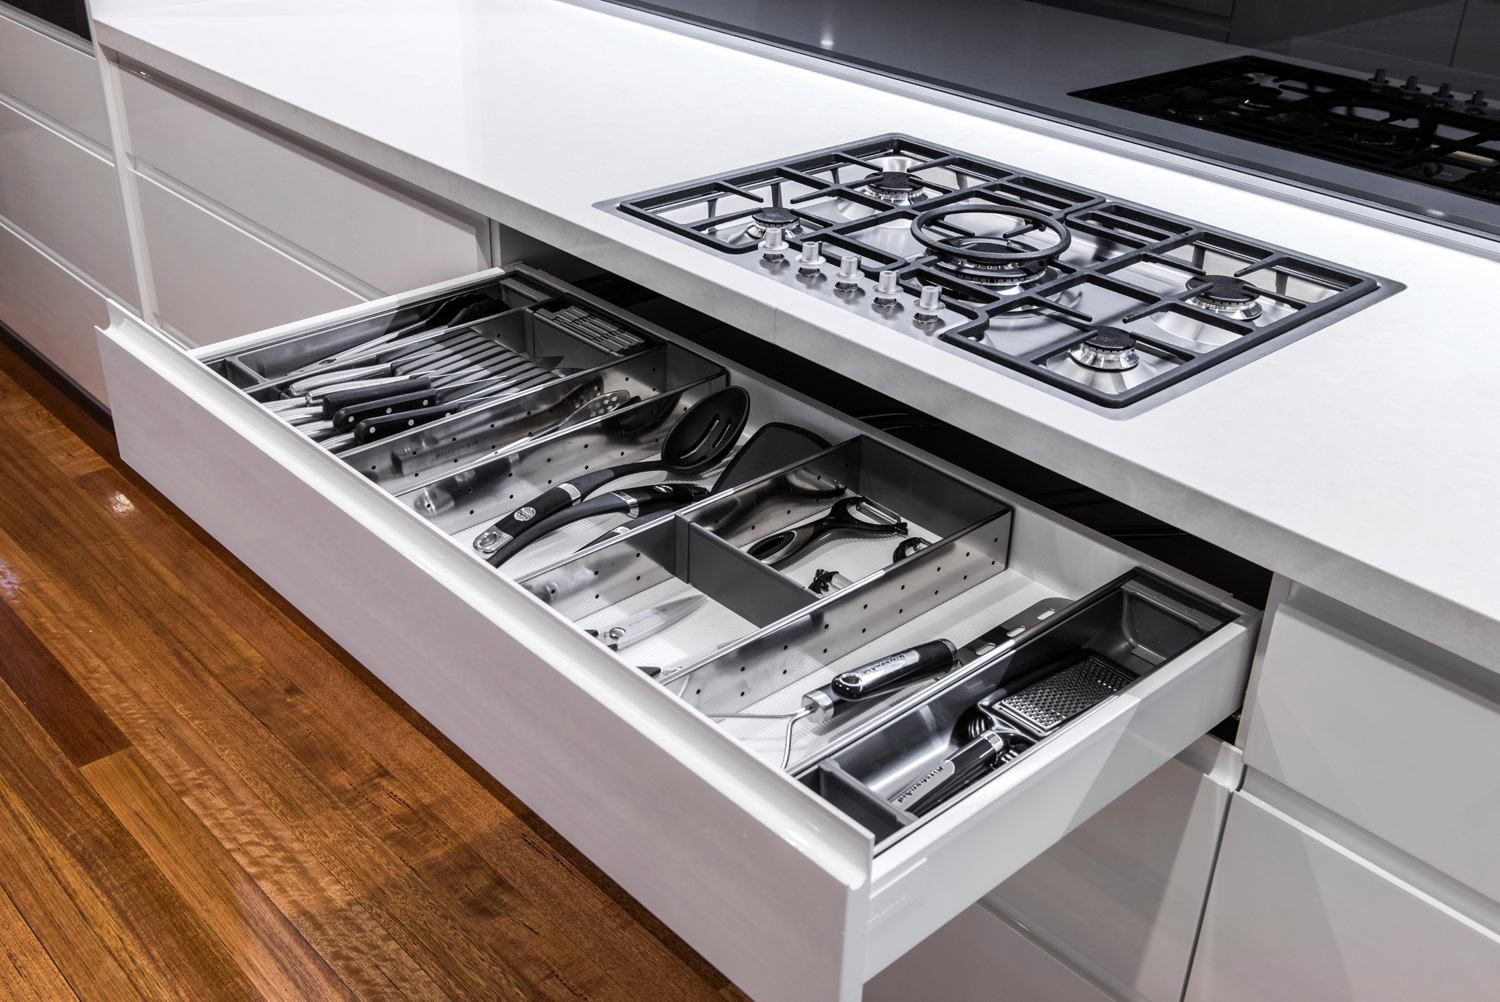 Storage has been seamlessly integrated into this kitchen's design